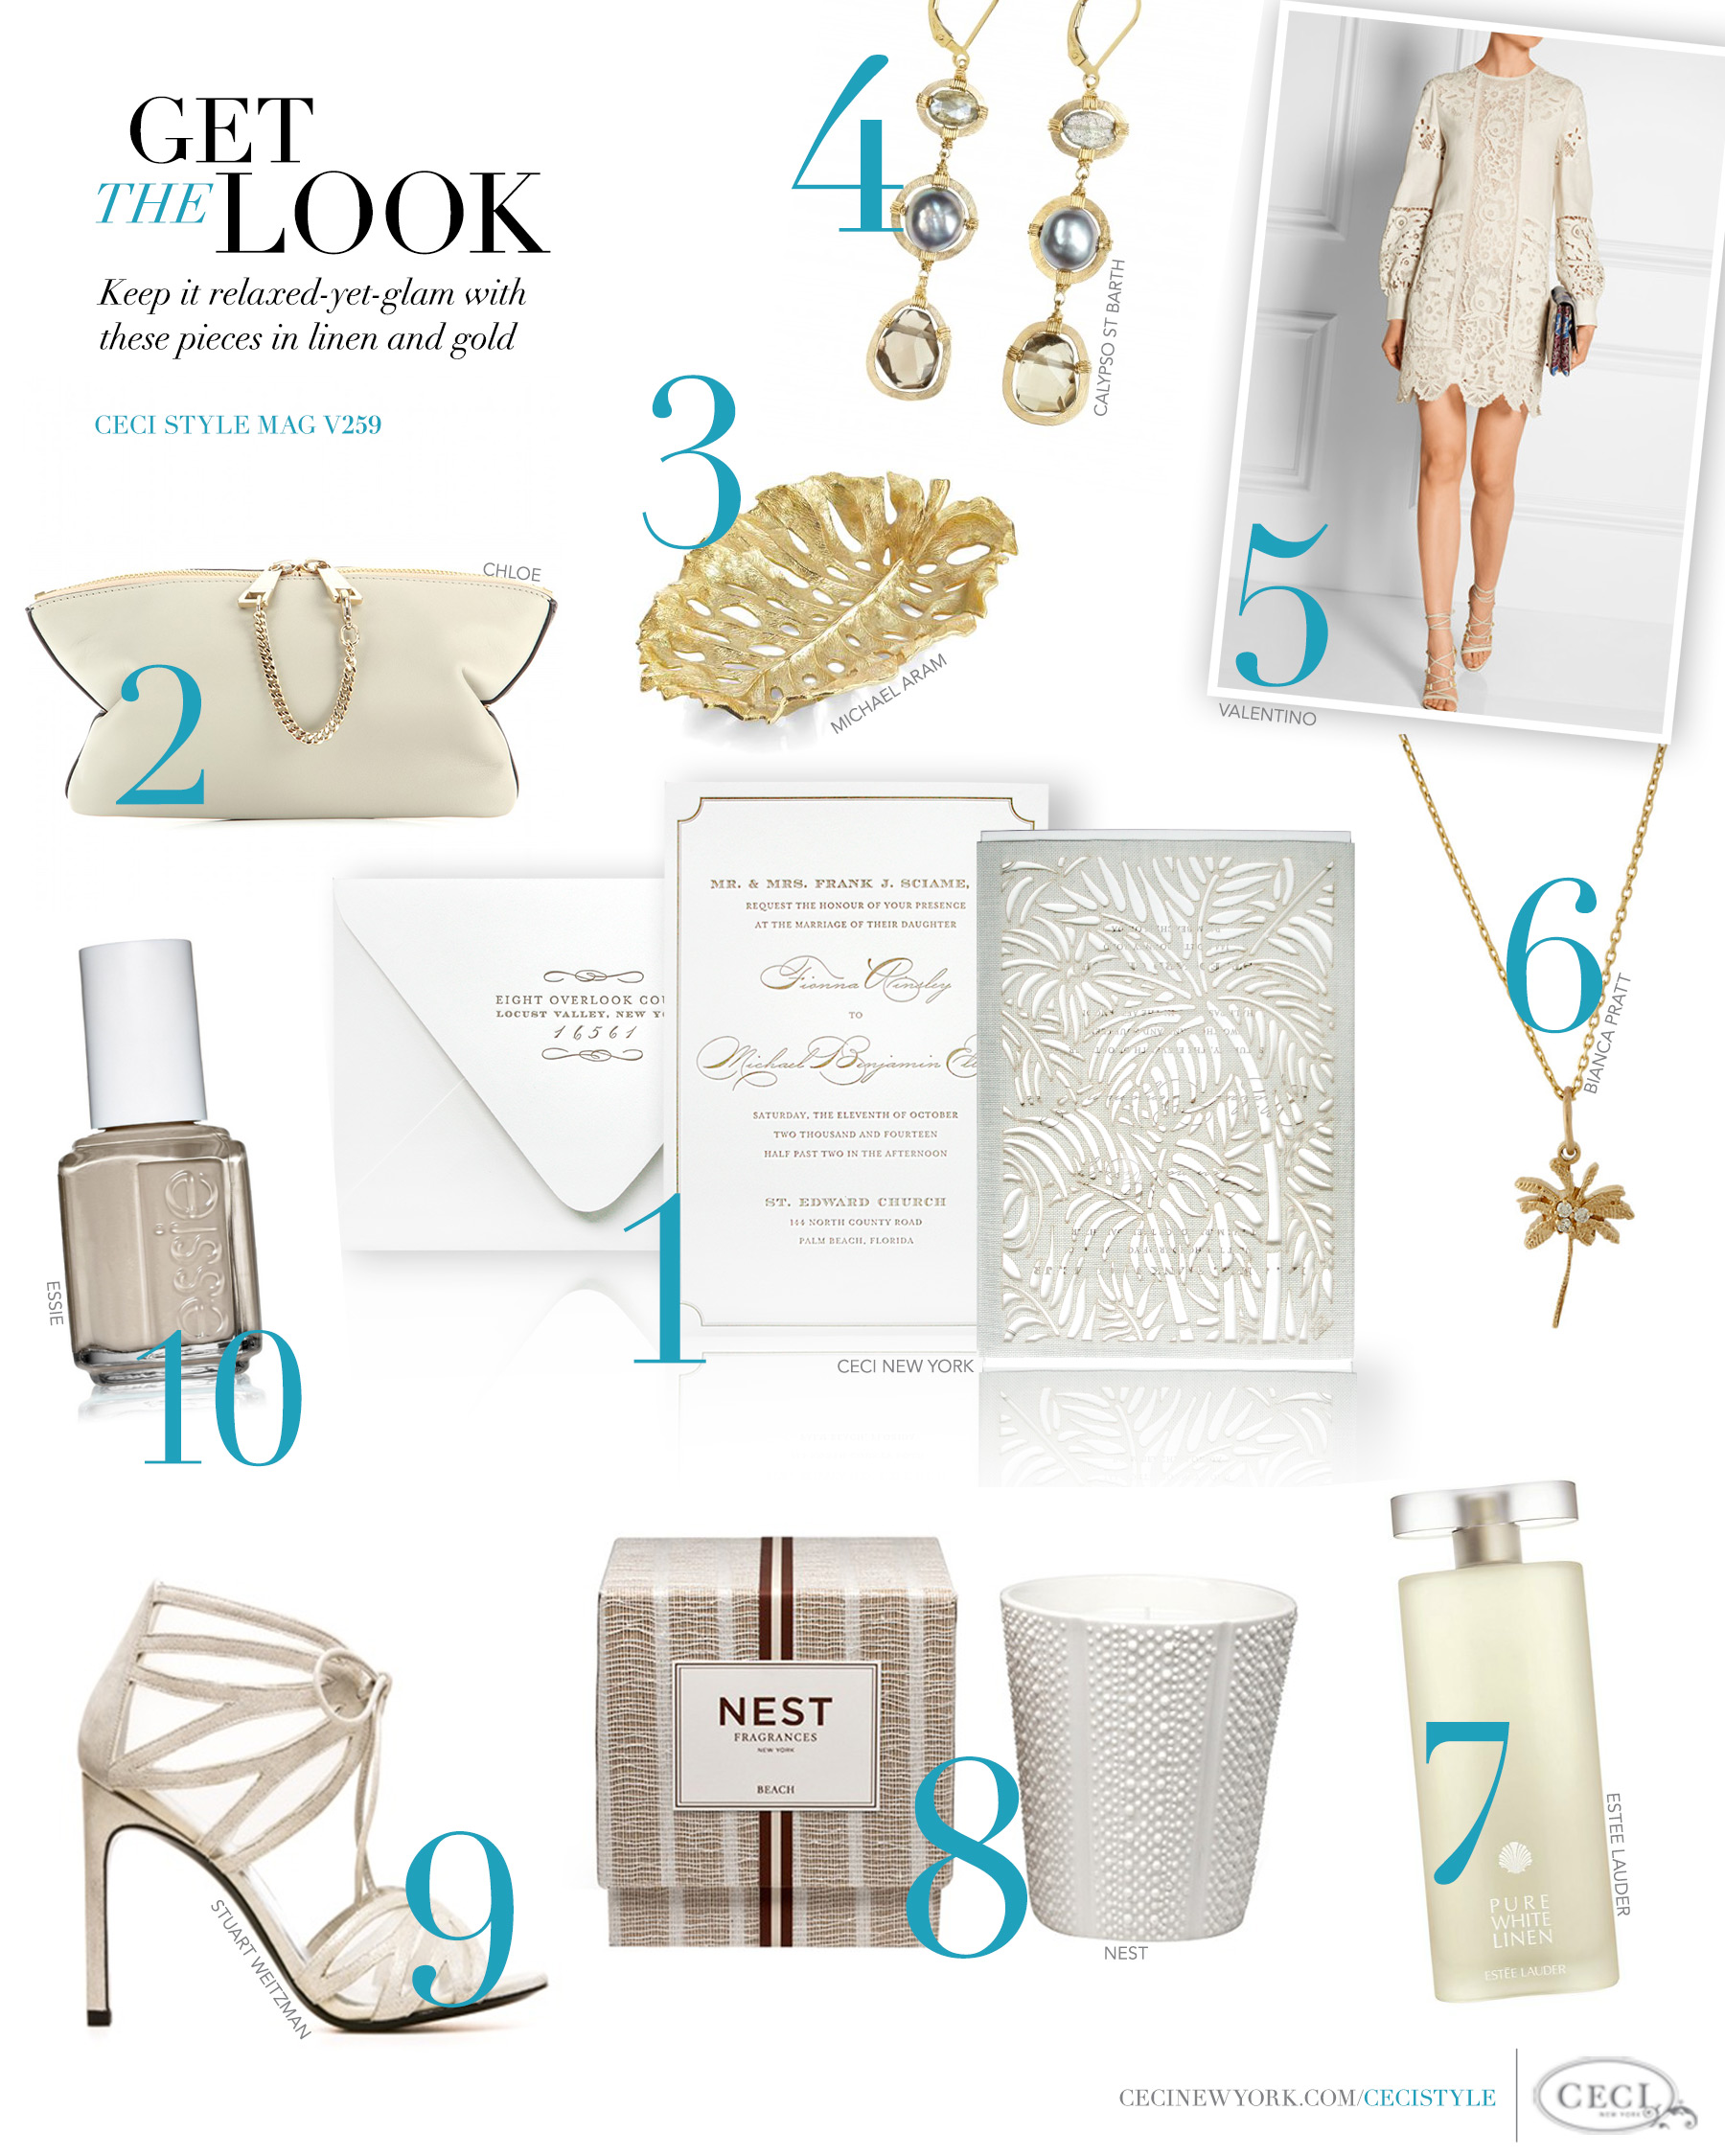 CeciStyle Magazine v259: Get The Look - Palm Chic - Keep it relaxed-yet-glam with these pieces in linen, sand and gold. - Luxury Wedding Invitations by Ceci New York - ceci new york, laser-cut, linen invitation, chloe, michael aram, calypso st barth, valentino, bianca pratt, palm tree, estee lauder, nest, lotus flower, coconut, melon, stuart weitzman, essie, fashion, style